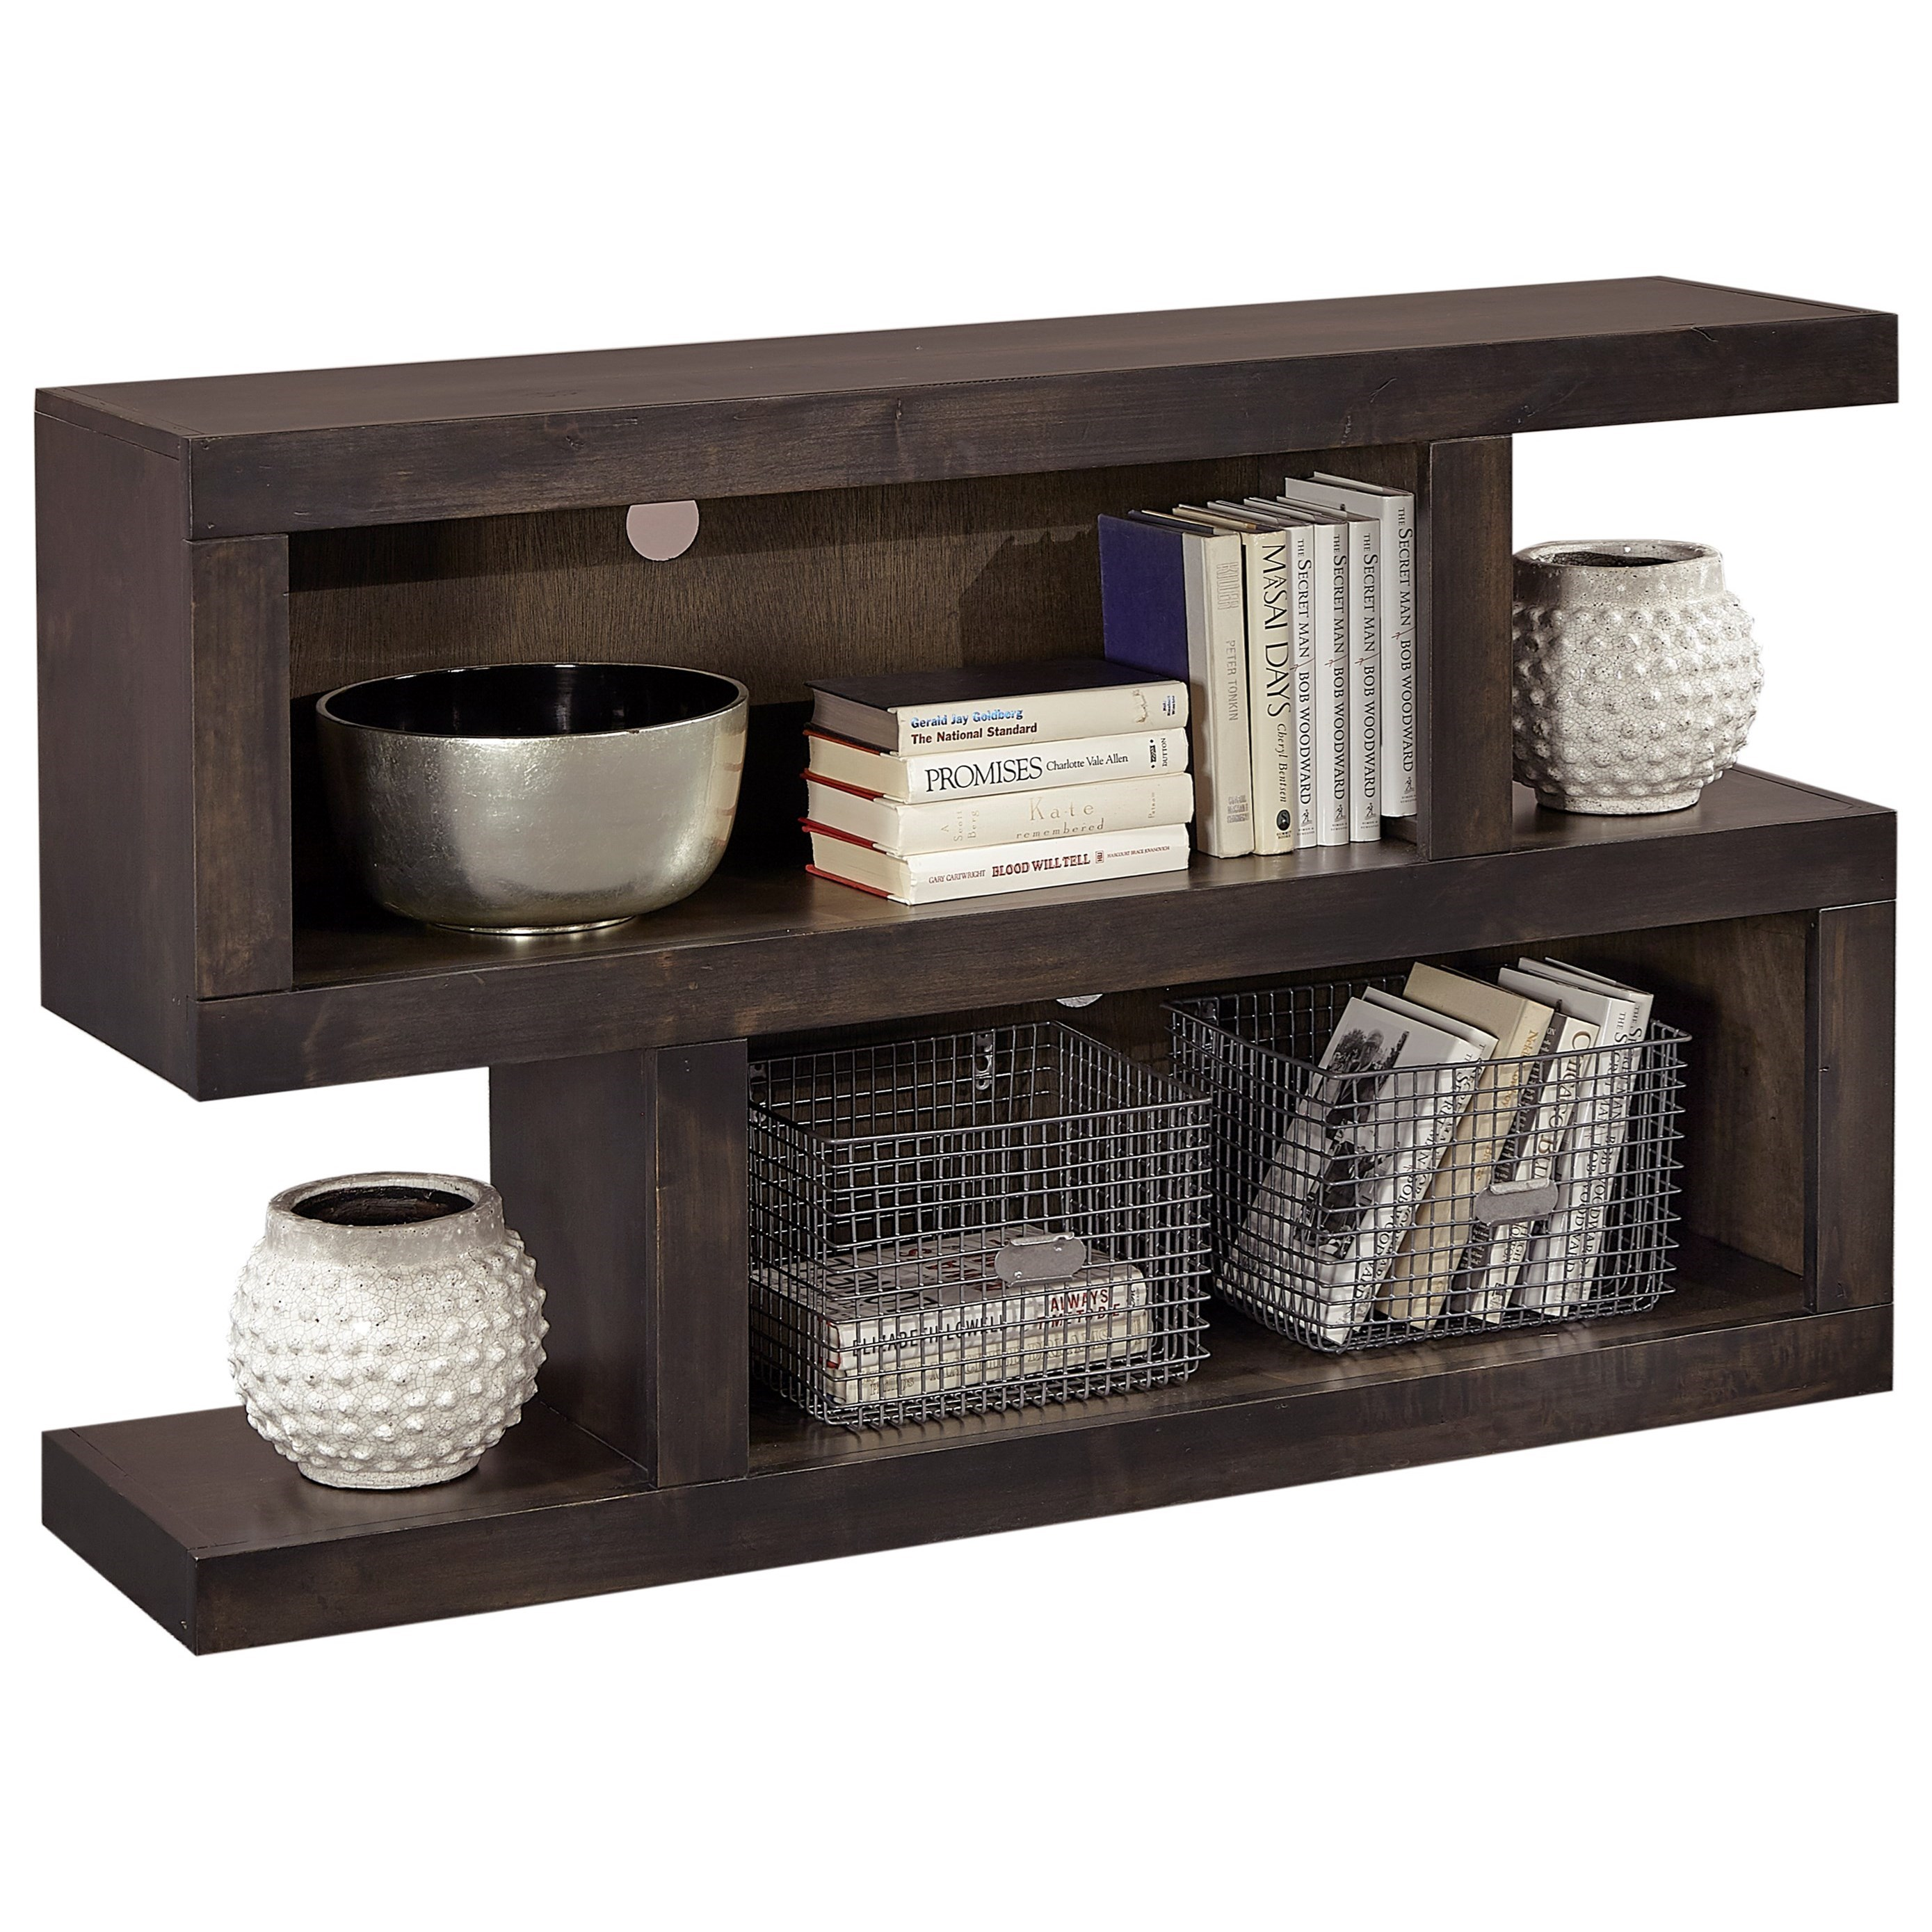 Avery Loft Sofa Table by Aspenhome at Stoney Creek Furniture